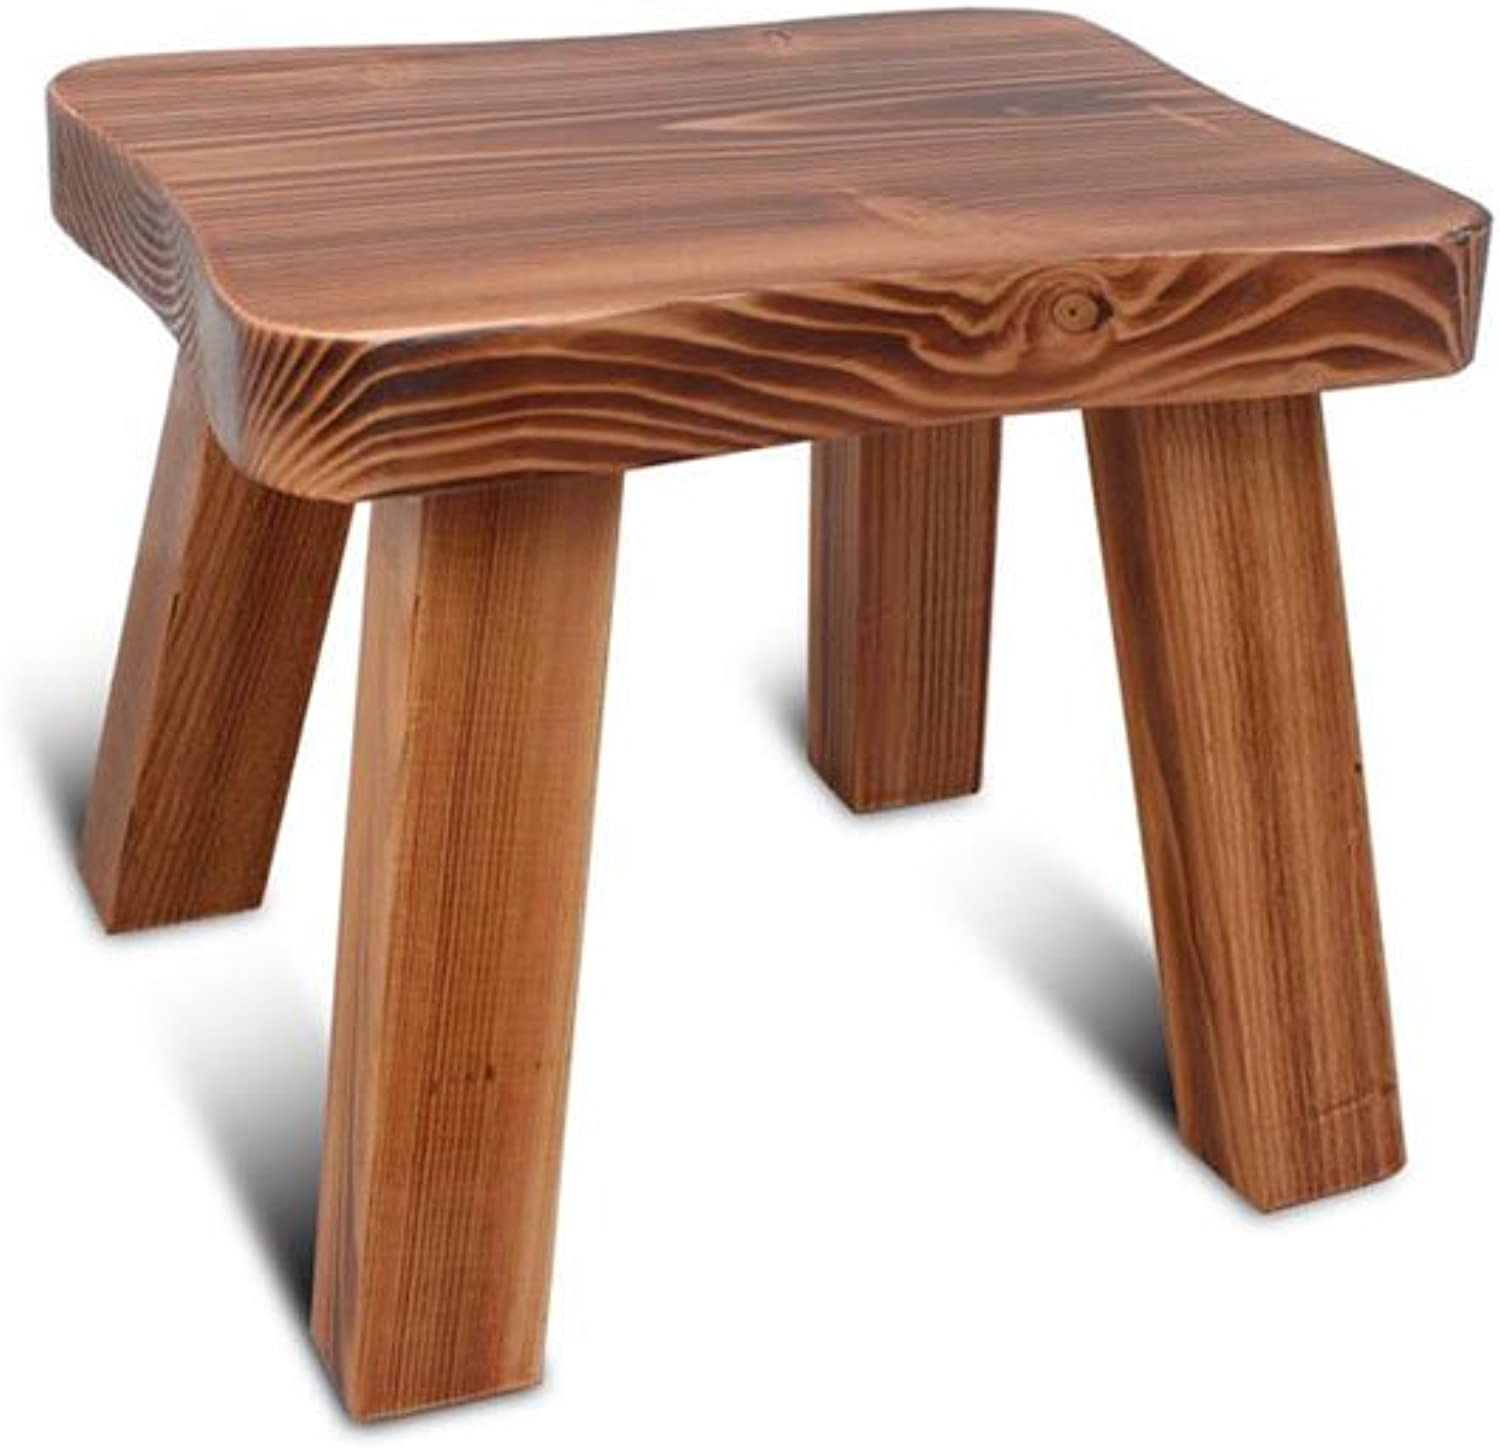 CJC Wooden Stool Household Indoor Low Stool Living Room Bathroom Home Office Furniture Kitchen (color   2)